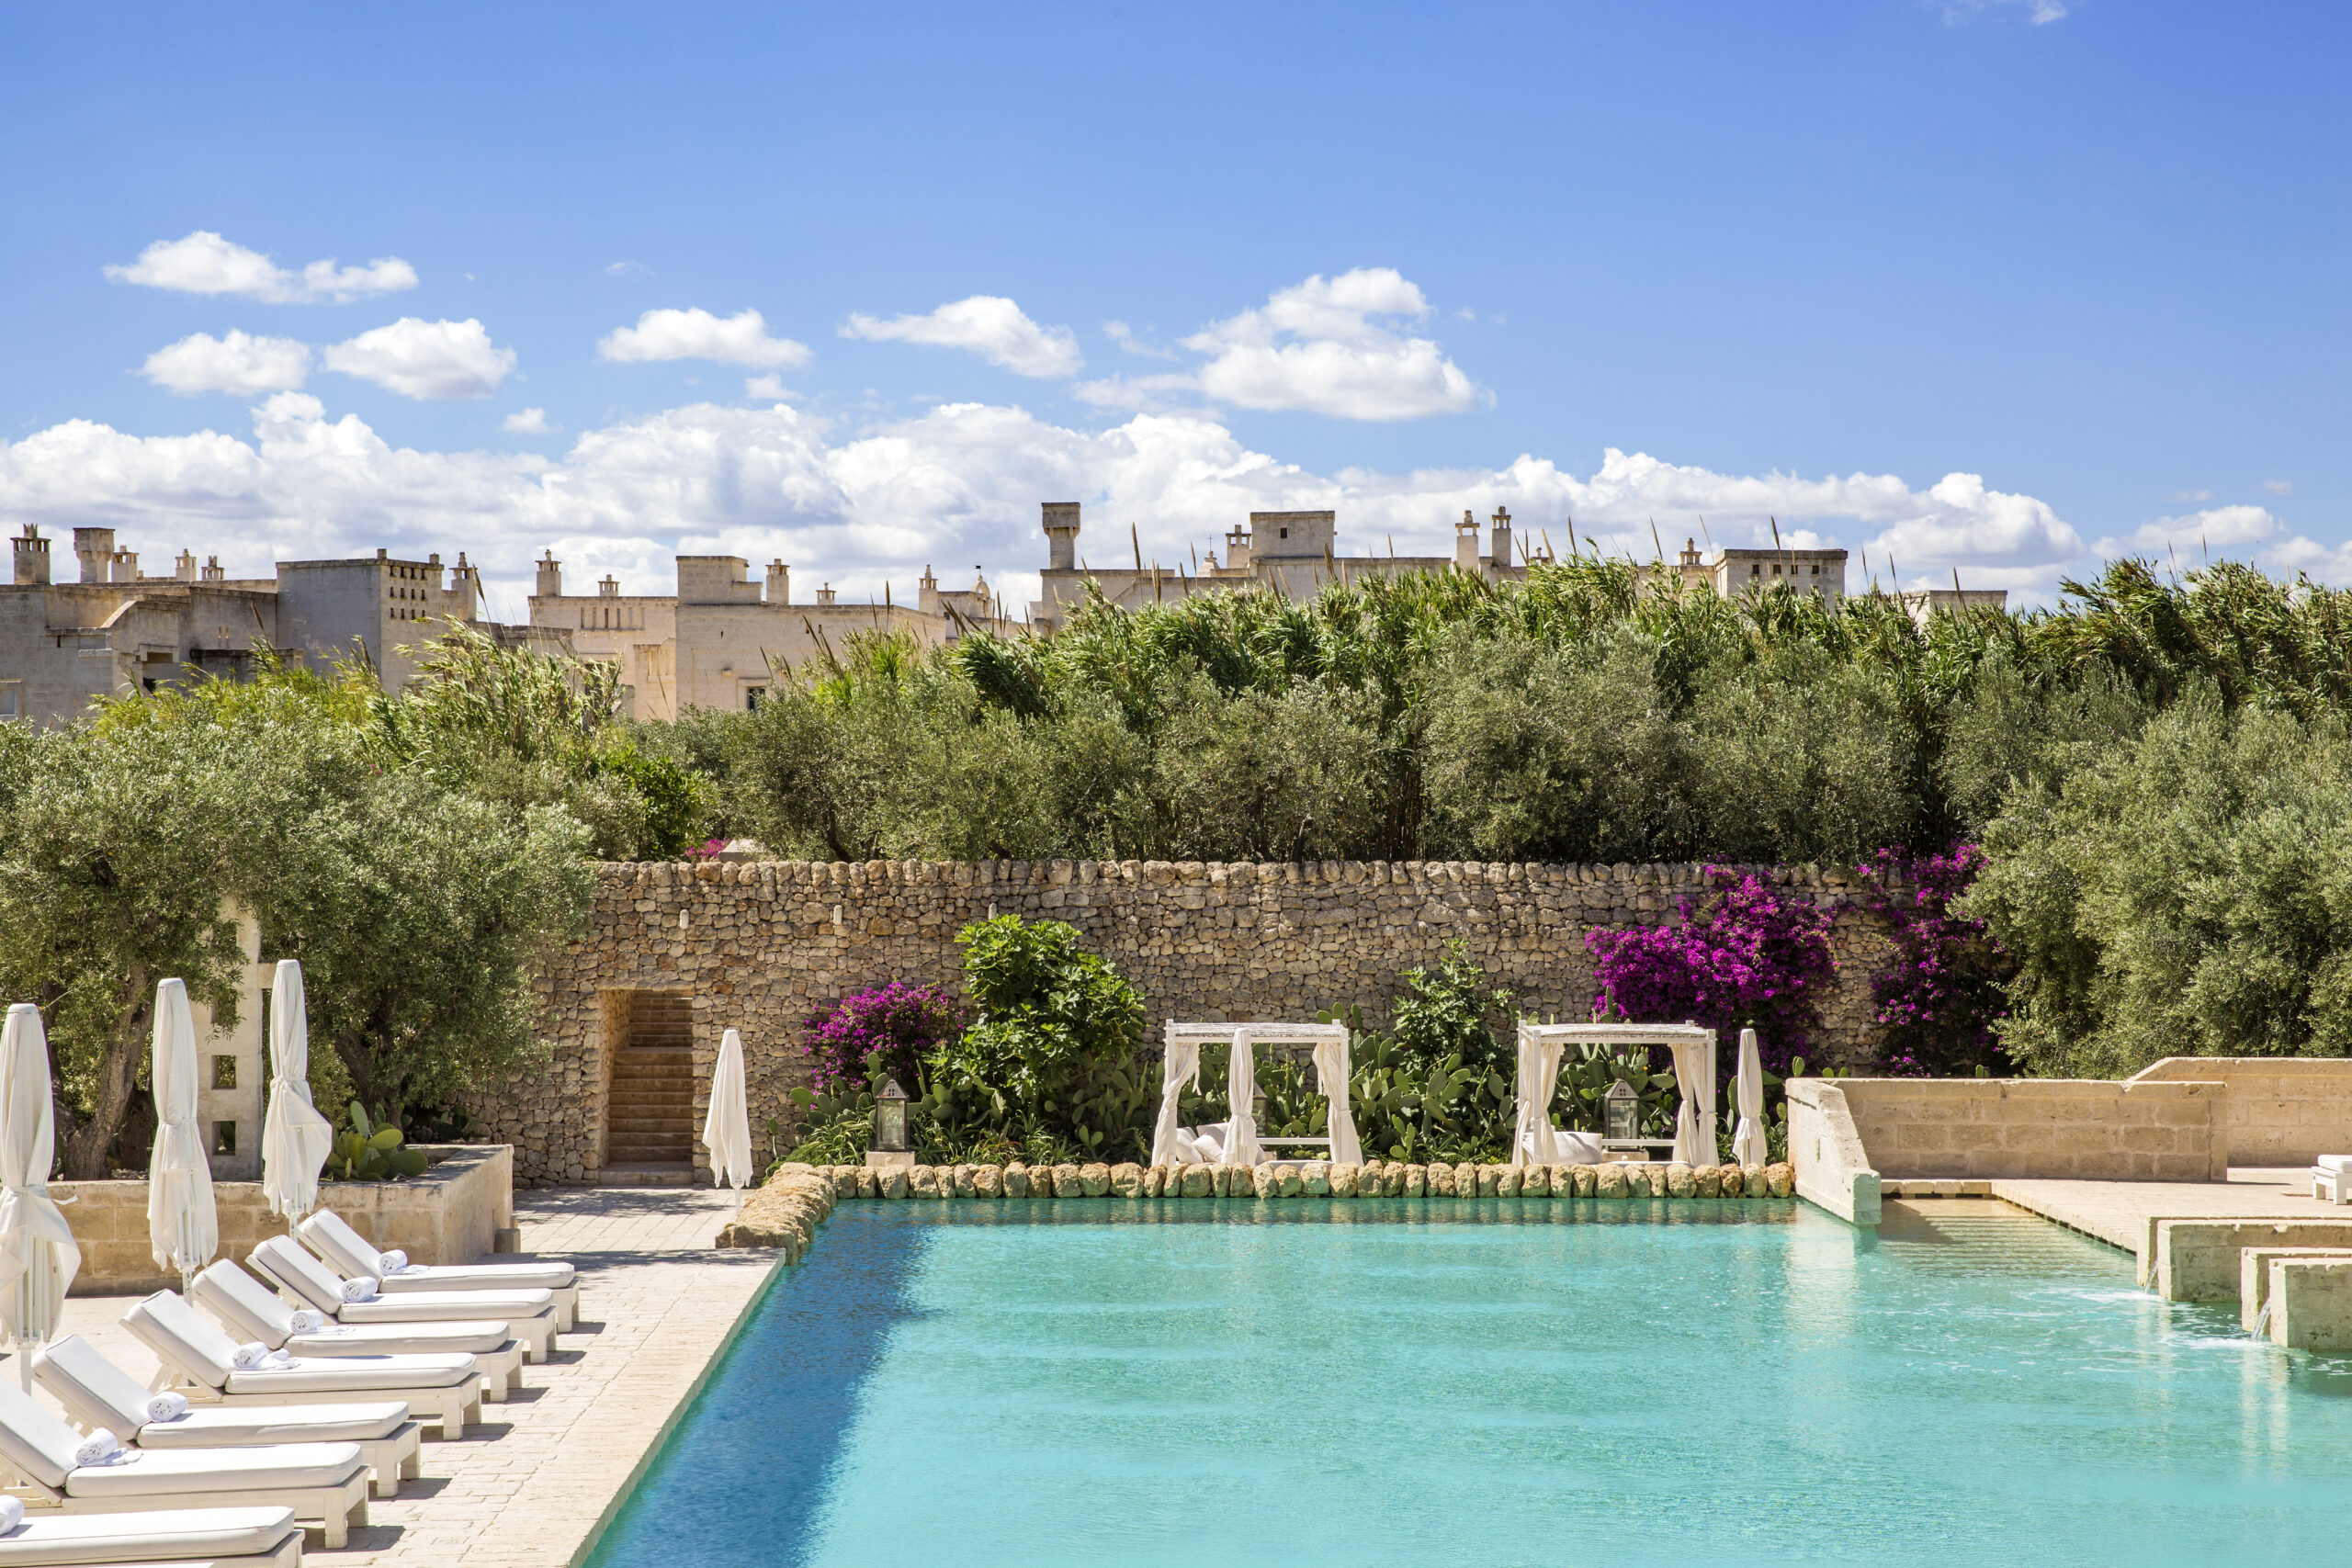 10 Best Social Distancing Wellness Holidays to Boost Immunity - Borgo Egnazia, Italy